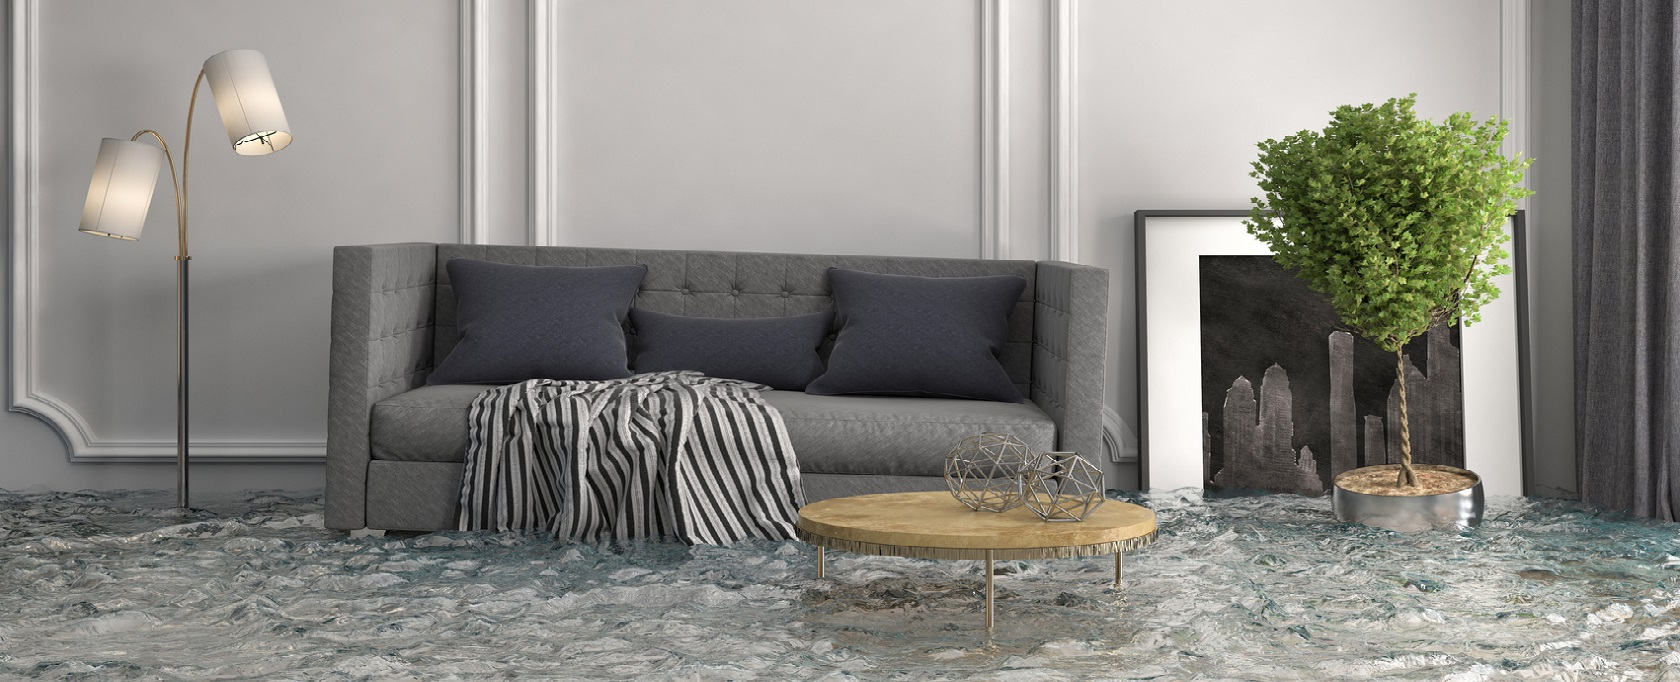 Expect The Unexpected Importance Of Preserving Your Investment Rosenthal Interiors Modern Contemporary Furnishings